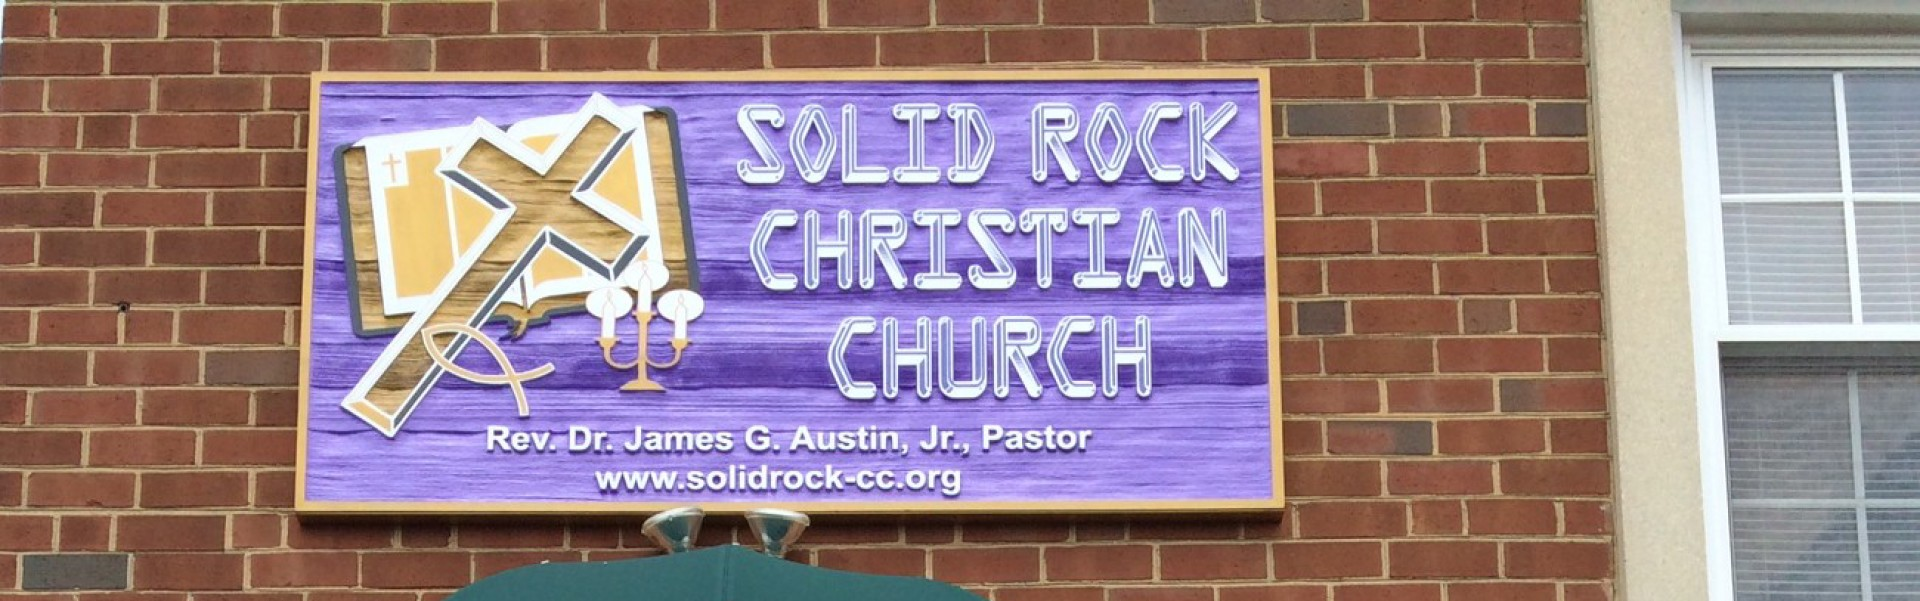 Solid Rock Christian Church